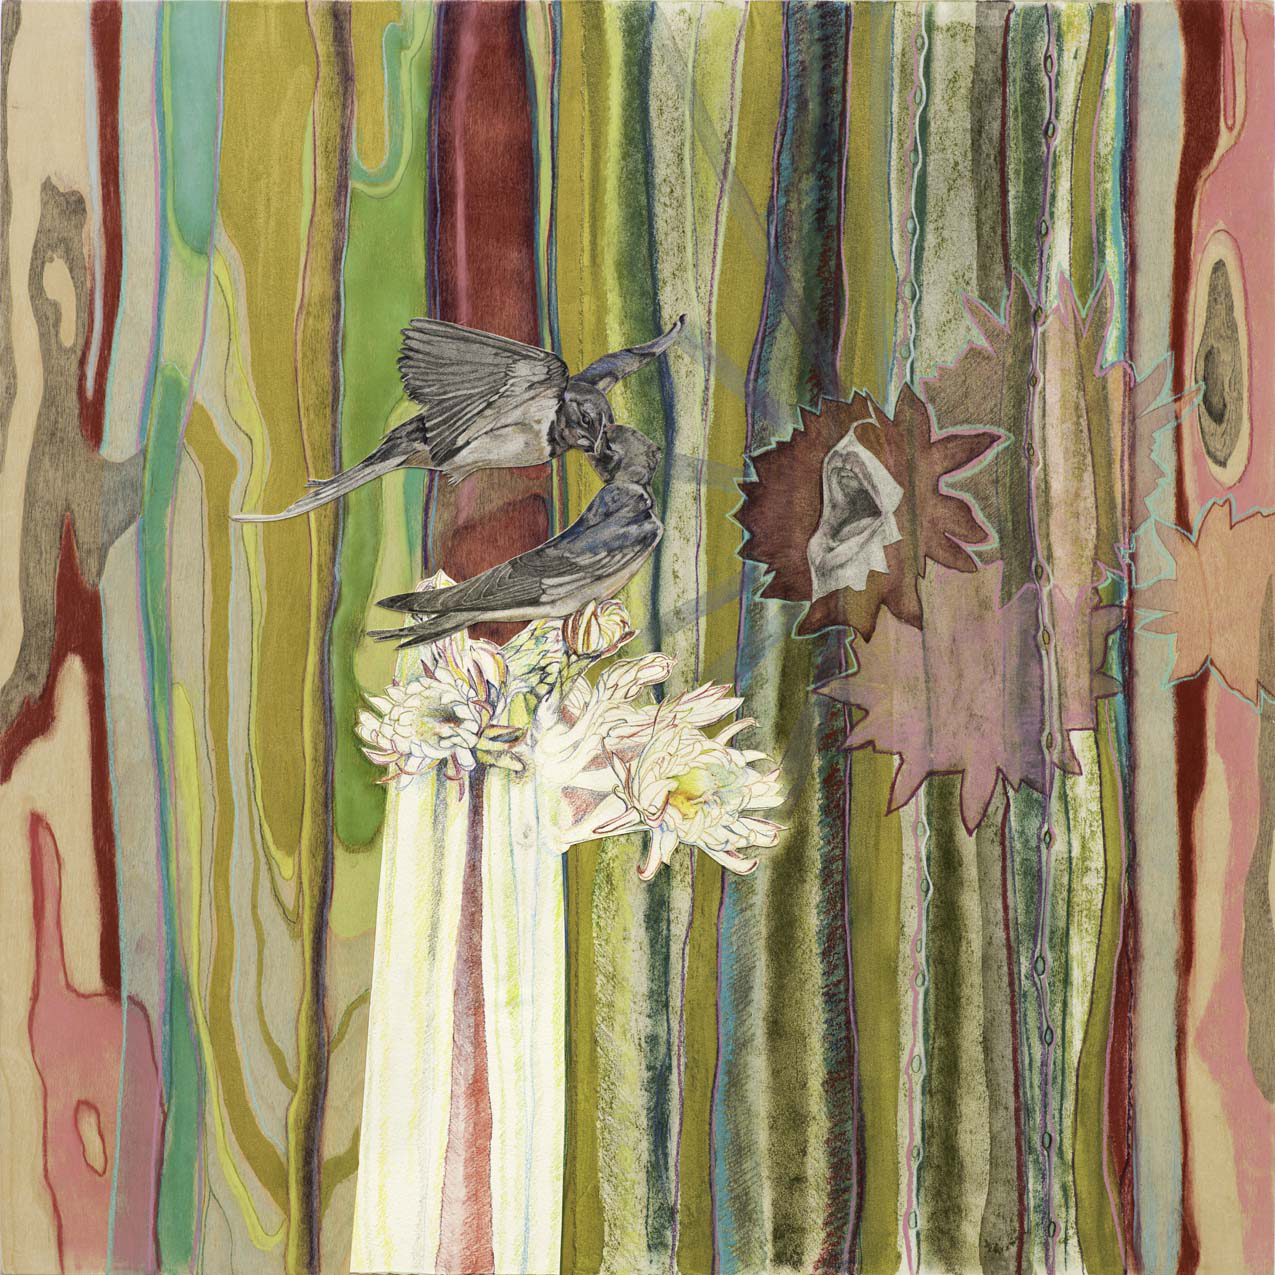 Blooming from Within, Panel 4